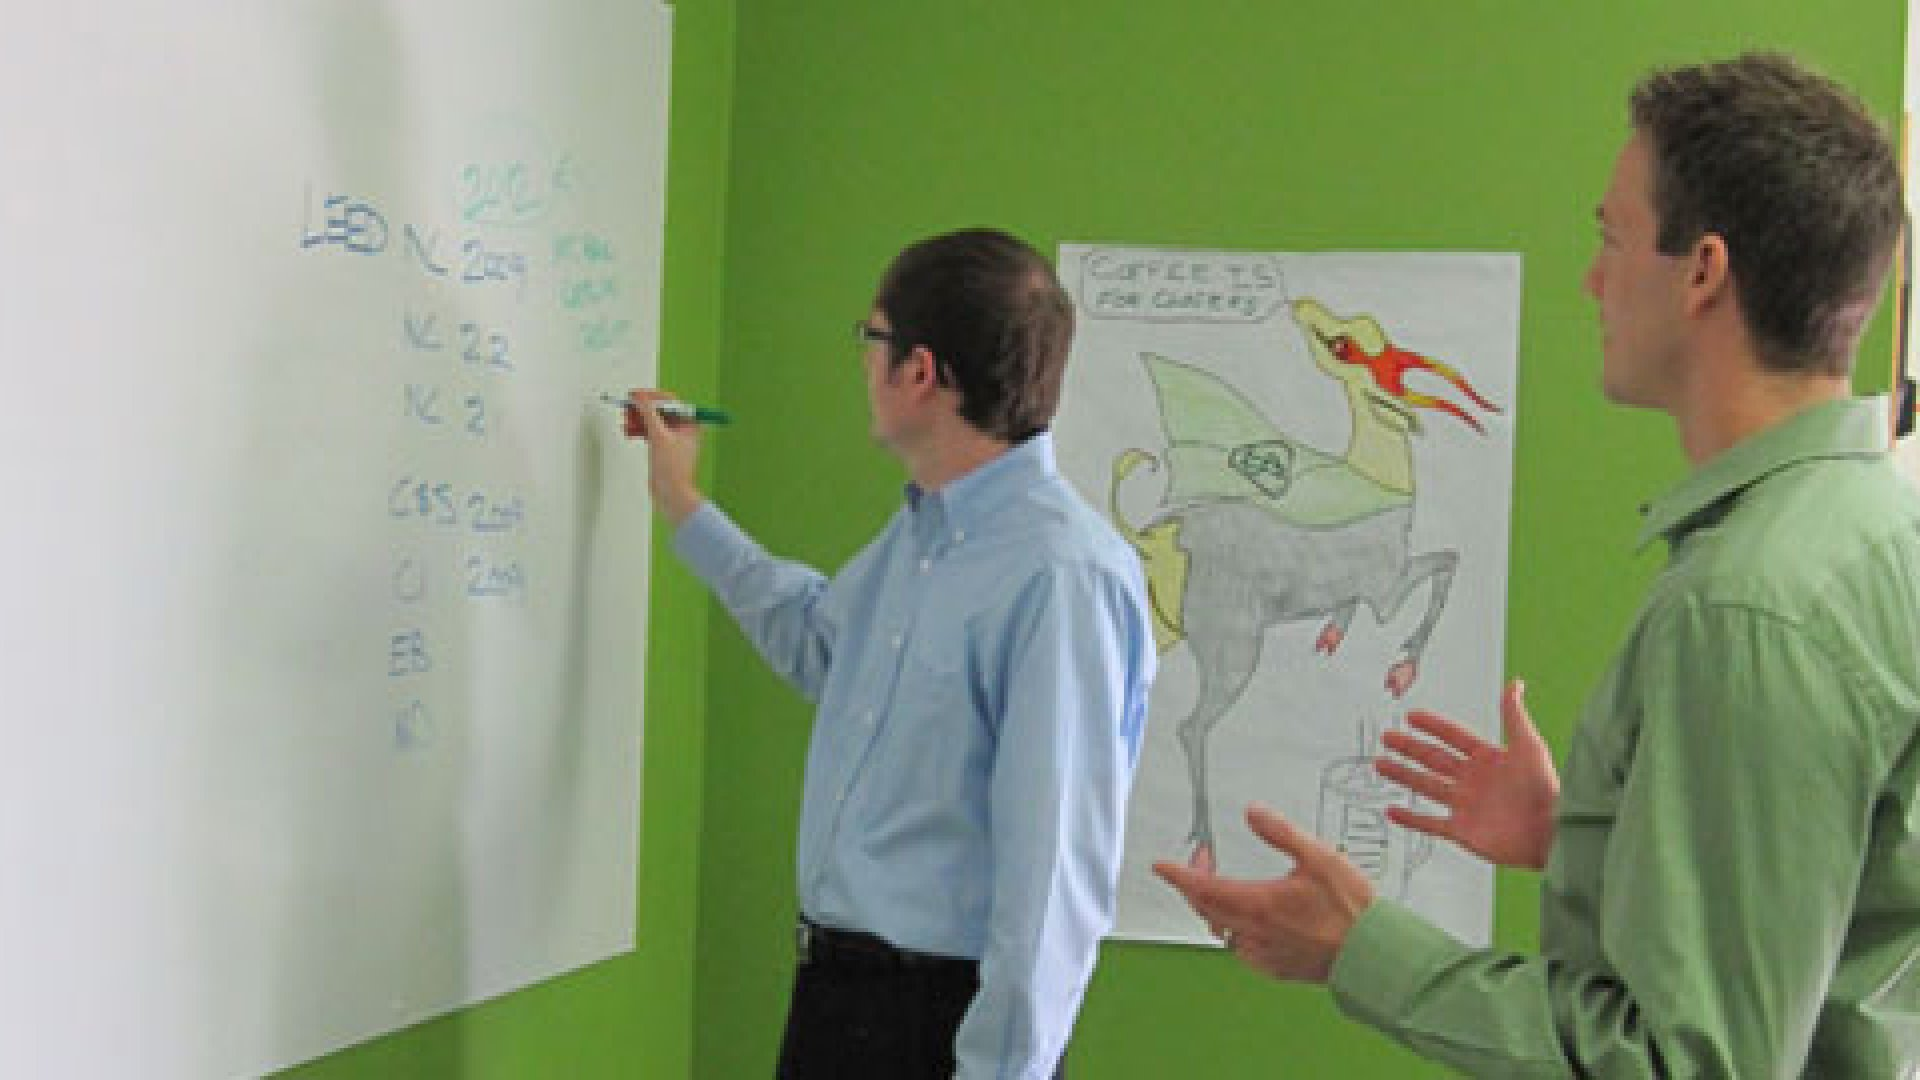 Submittal Exchange's president Matt Ostanik (left) and sales representative Brett Robben (right) discuss planning for their LEED® green building software product.  In the background is picture of a gazelle, the company's unofficial mascot representing fast-paced growth.